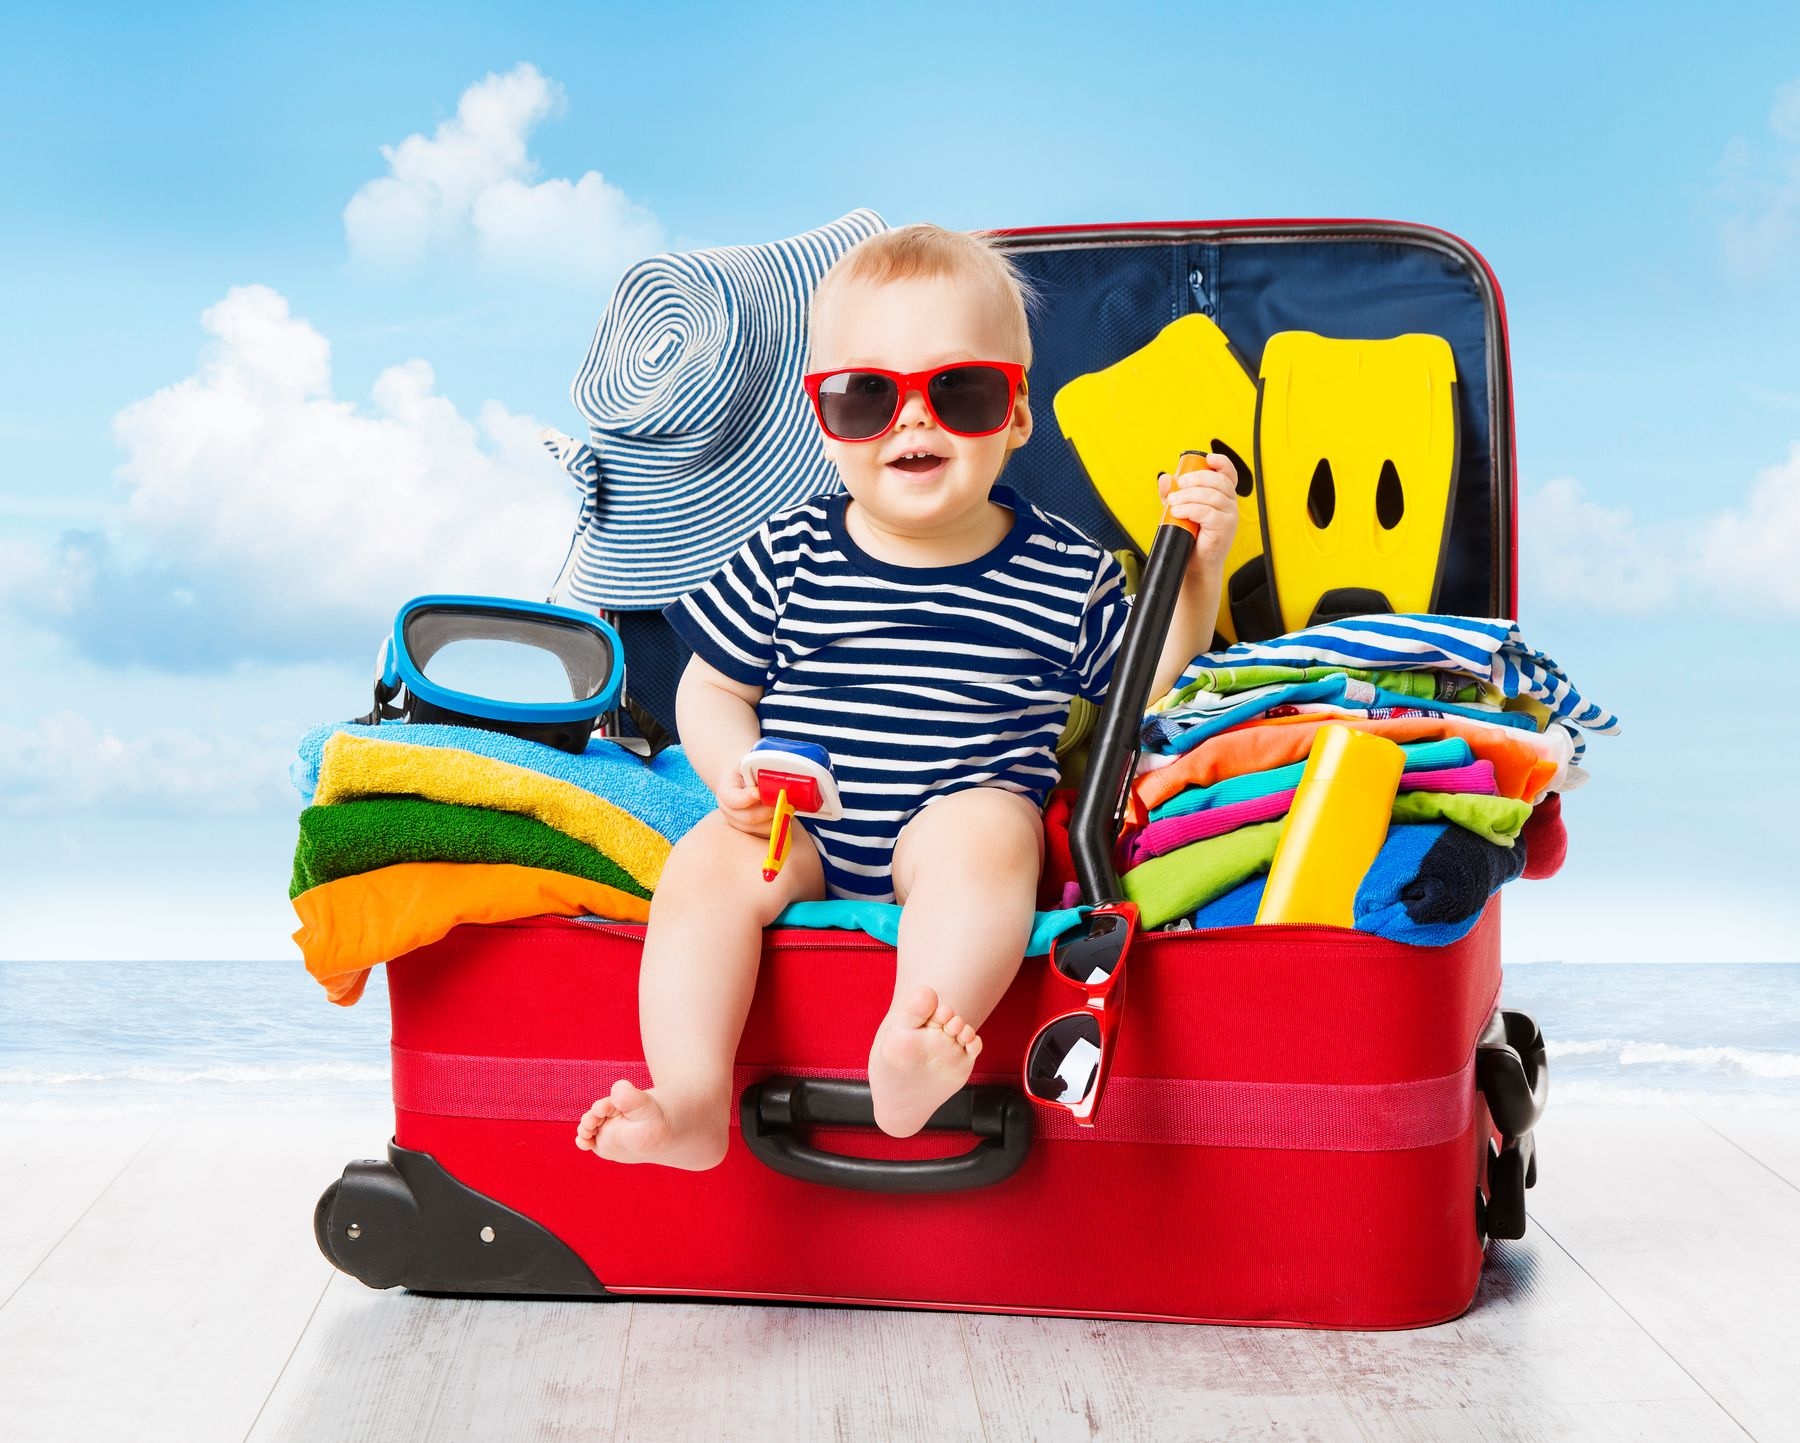 Wizz Air Baggage Allowance for Infants